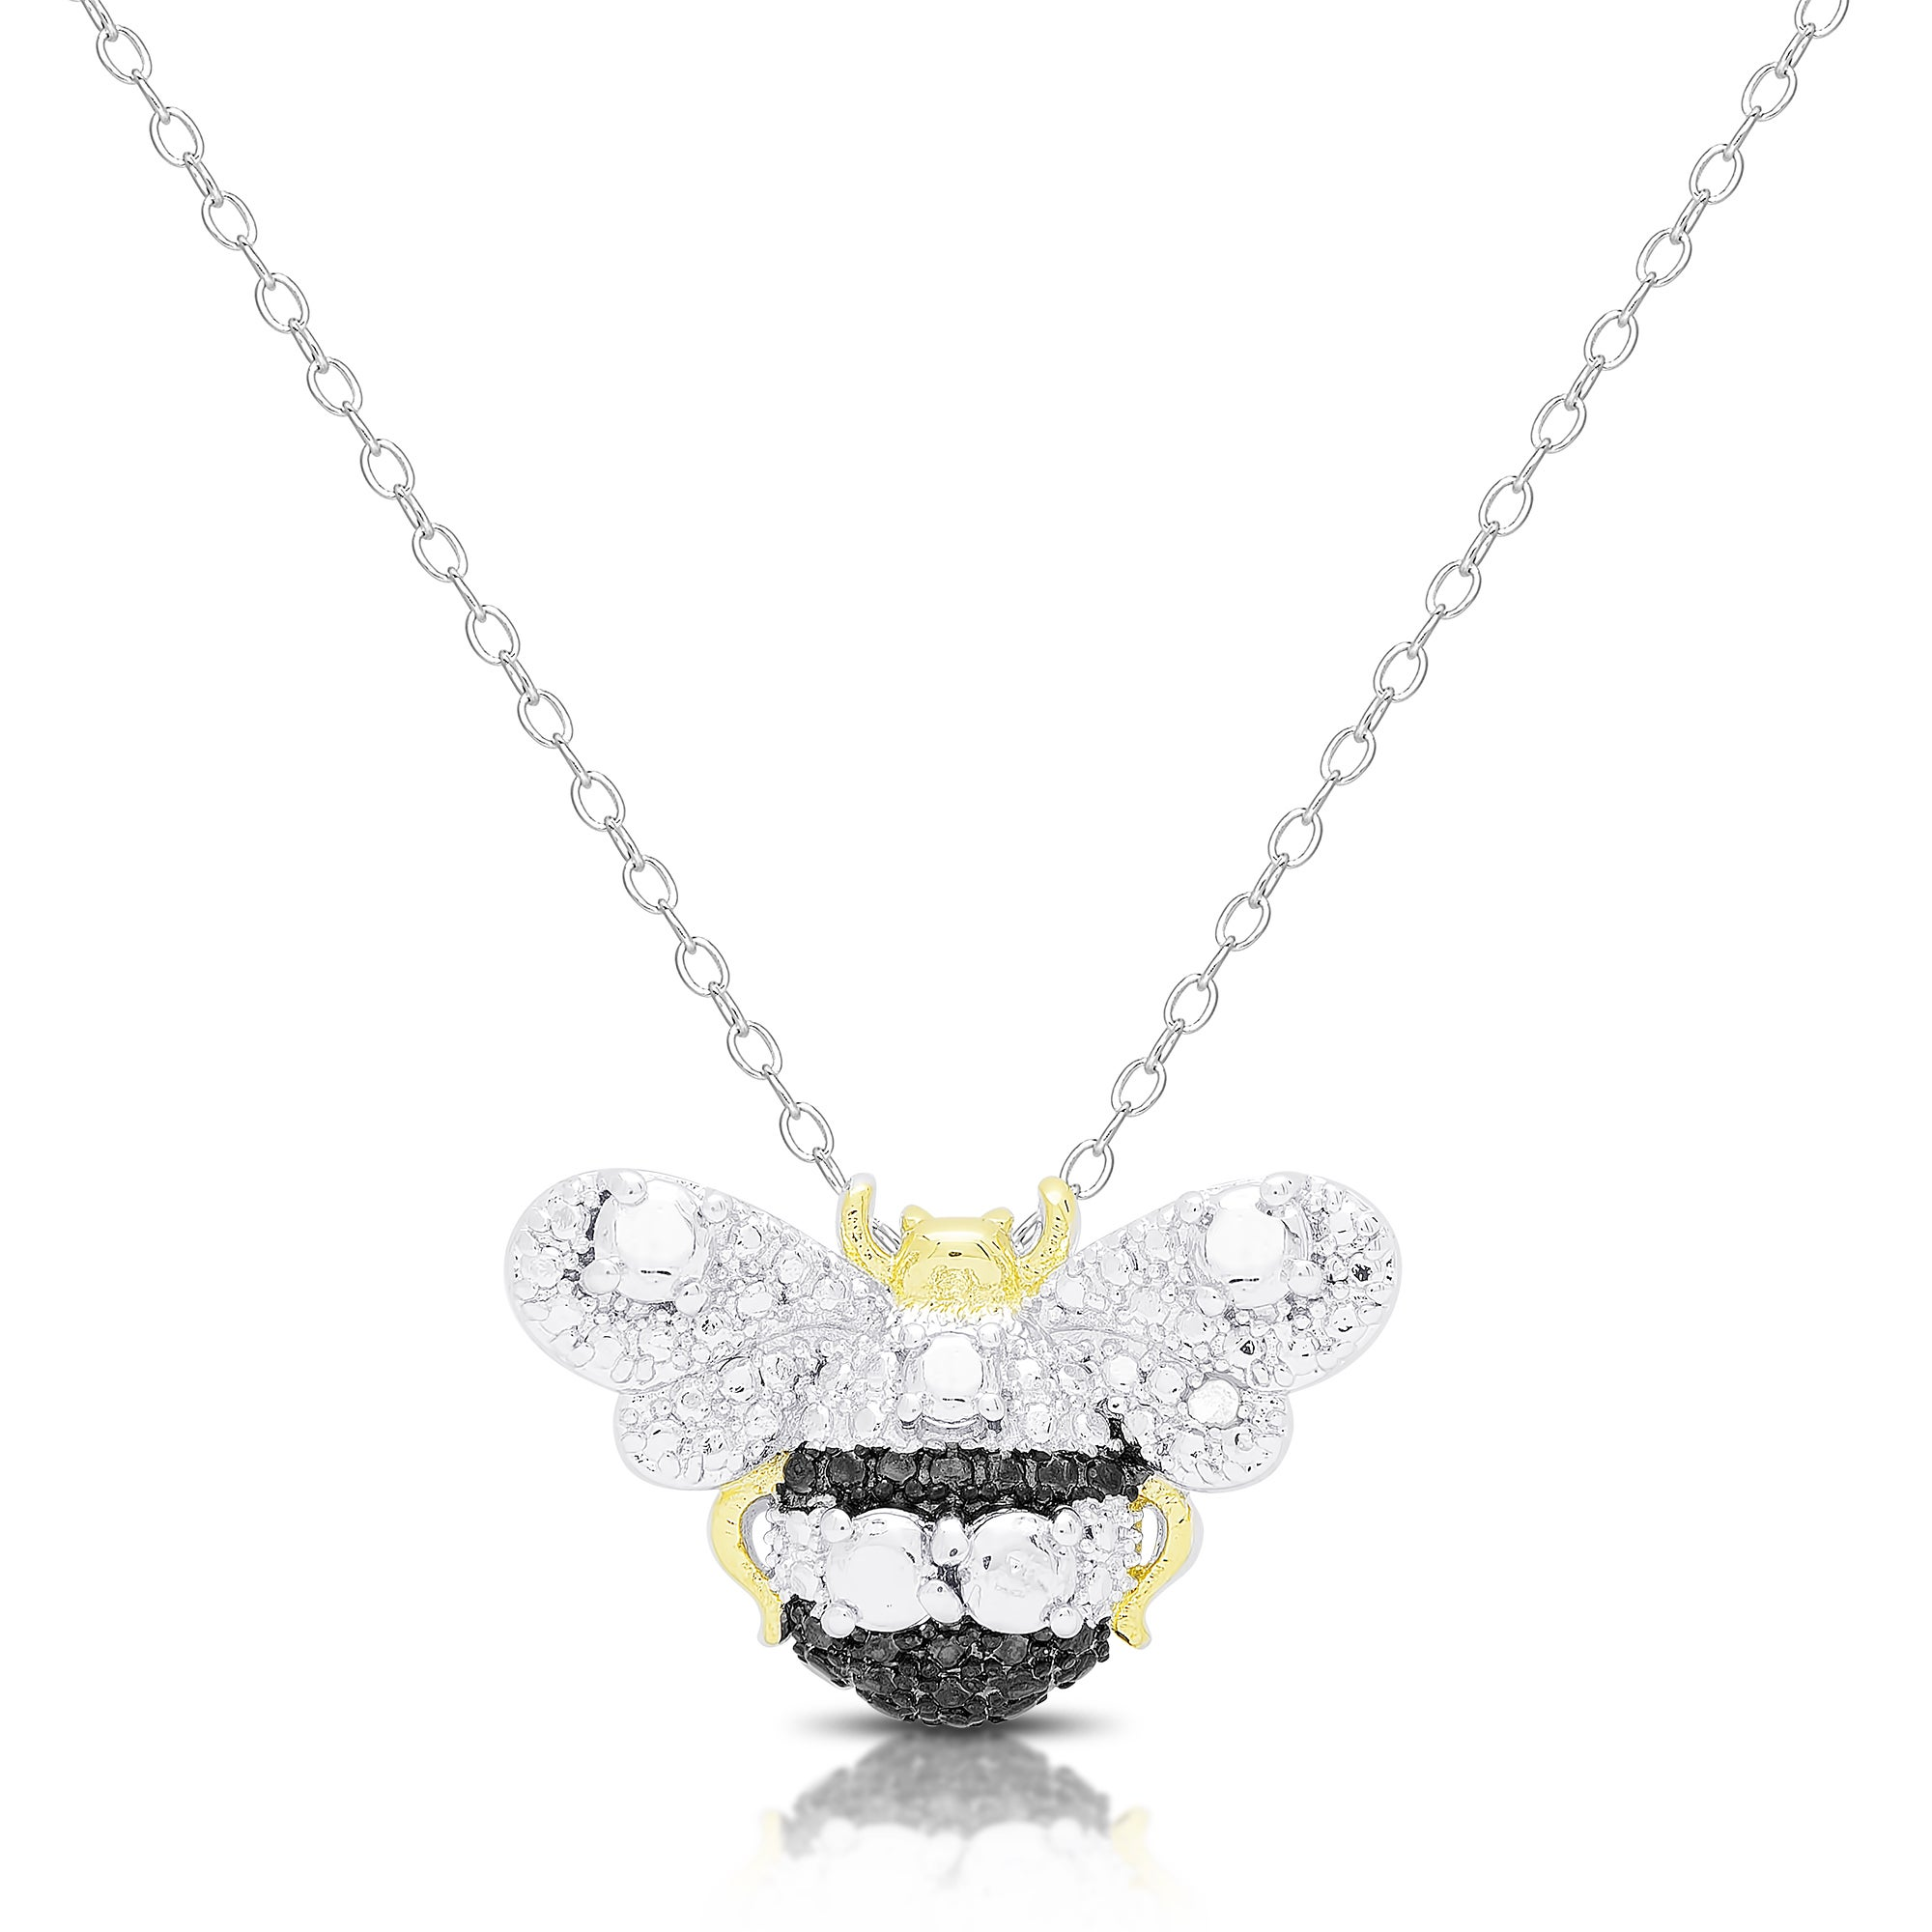 diamond product jewelry orders free overlay necklace watches bumblebee silver over honey overstock accent pendant on finesque bee shipping